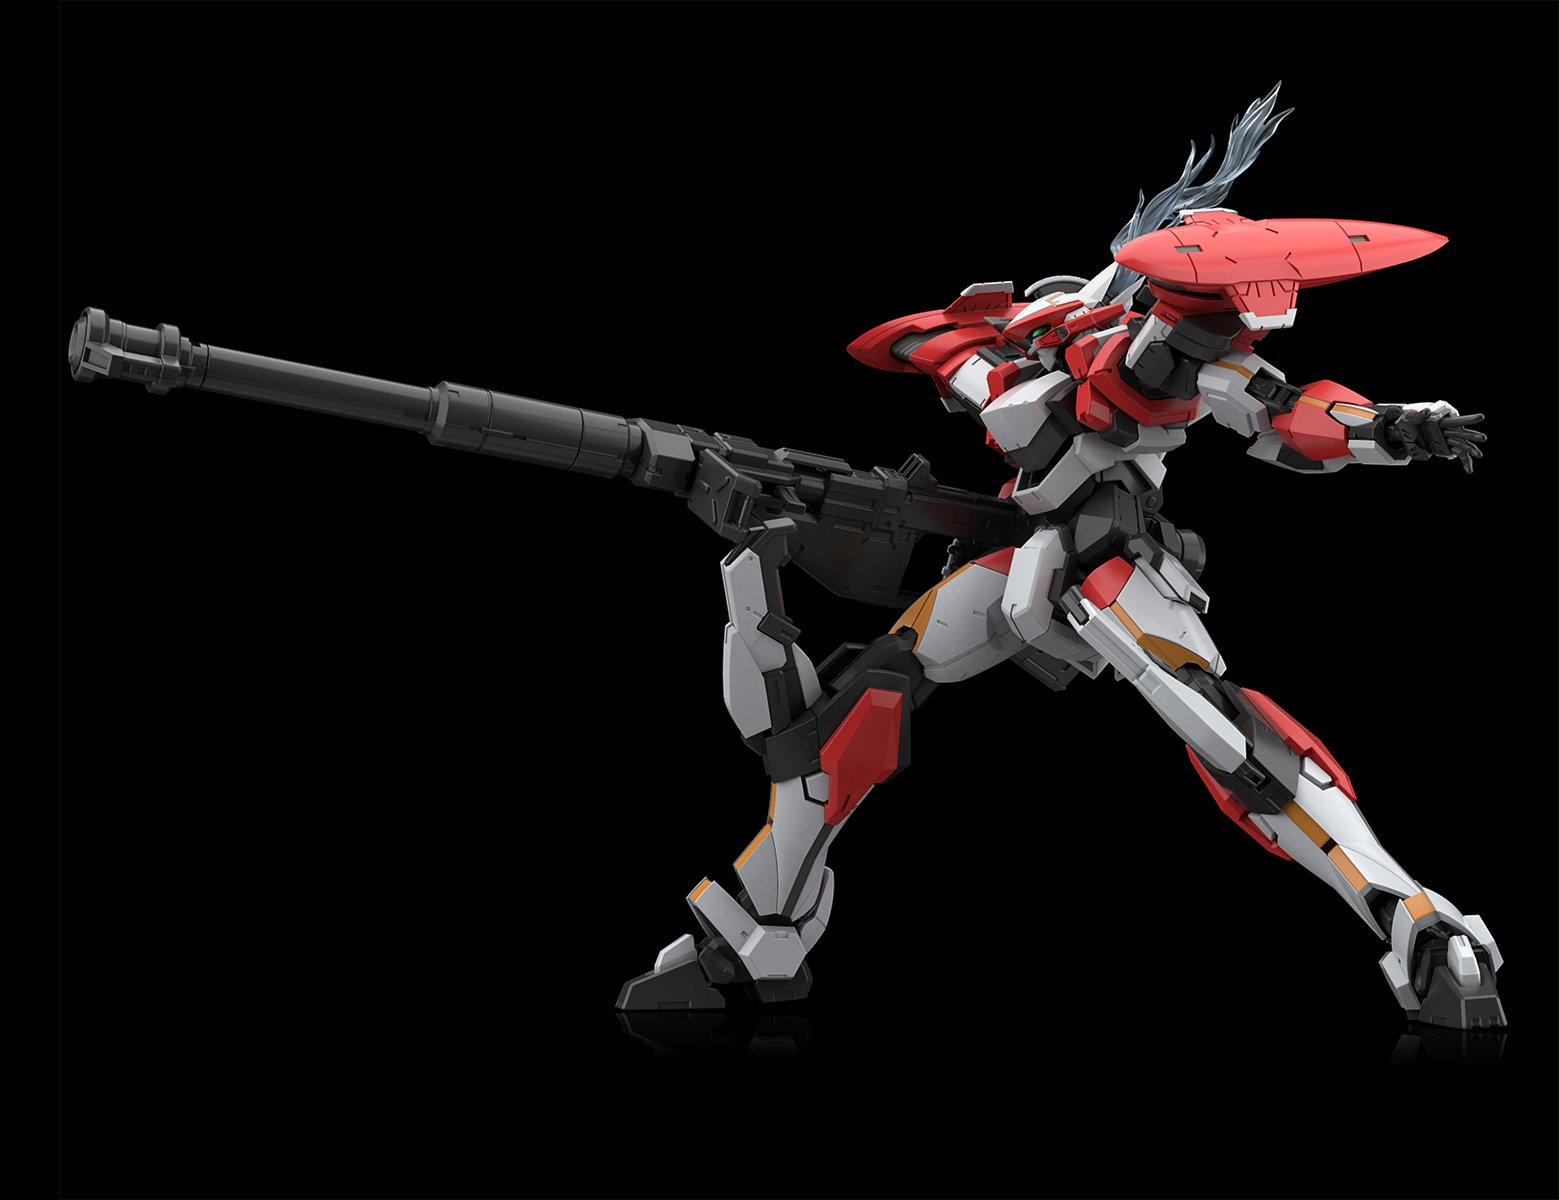 Aoshima - Full Metal Panic! Invisible Victory - ARX-8 Laevatein Final Battle Ver. Model Kit (1/48 Scale)